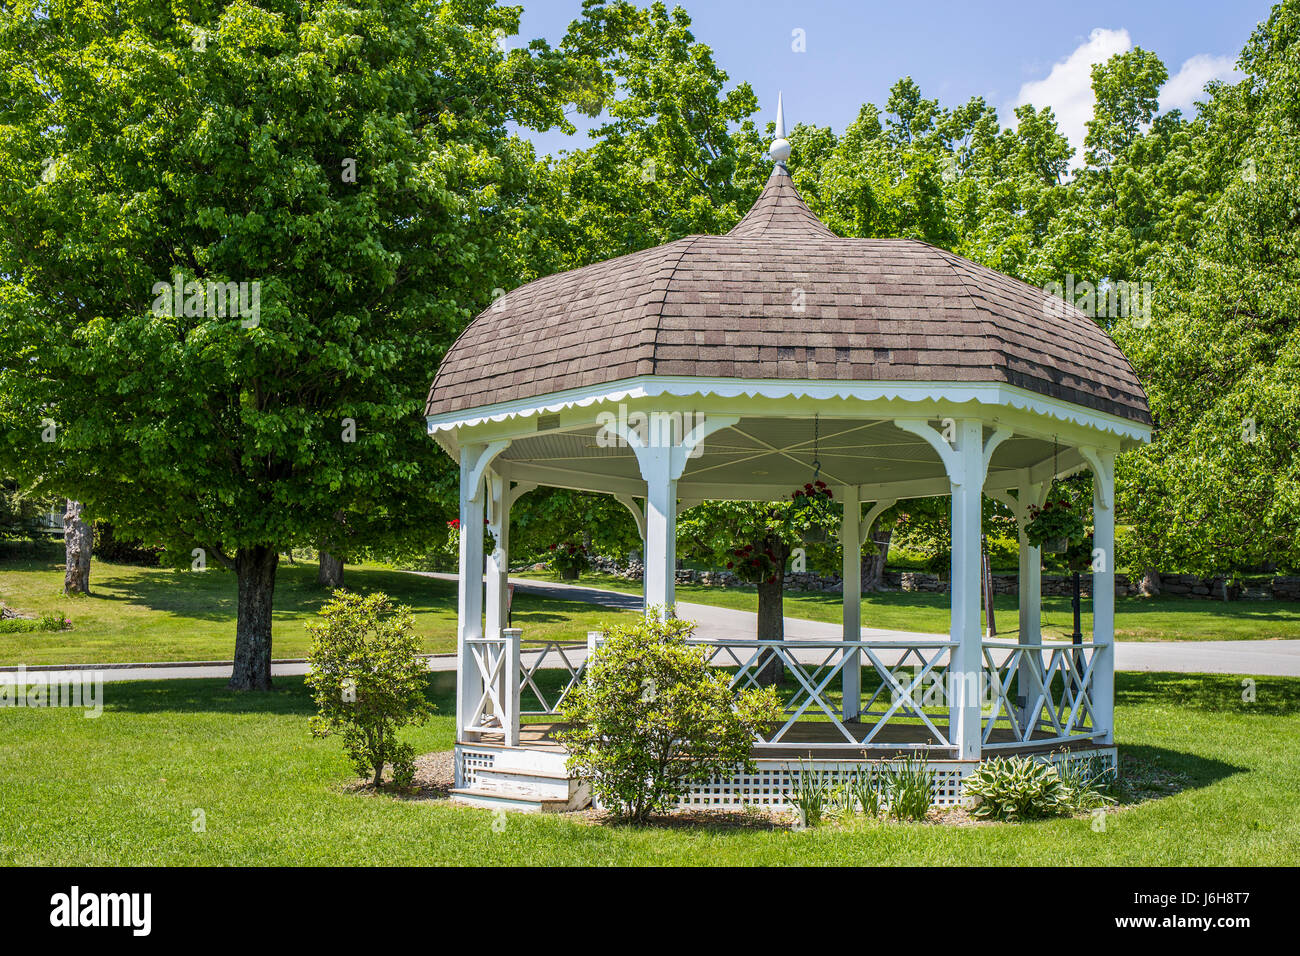 Bandstand in the center of Rindge, New Hampshire on the common - Stock Image